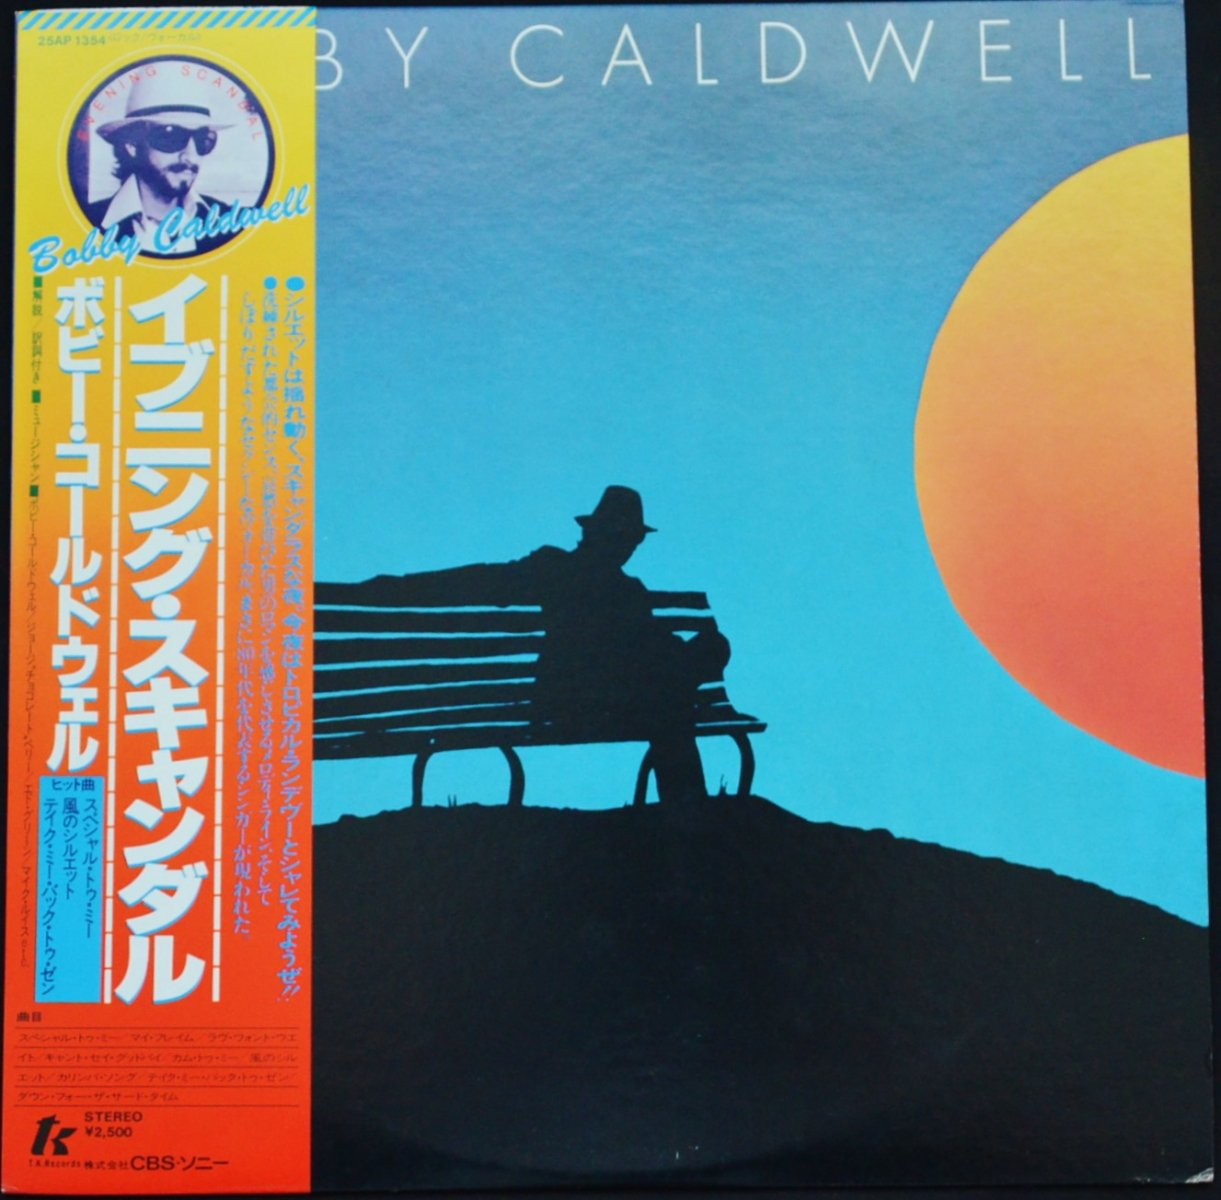 BOBBY CALDWELL ‎/ EVENING SCANDAL (LP)